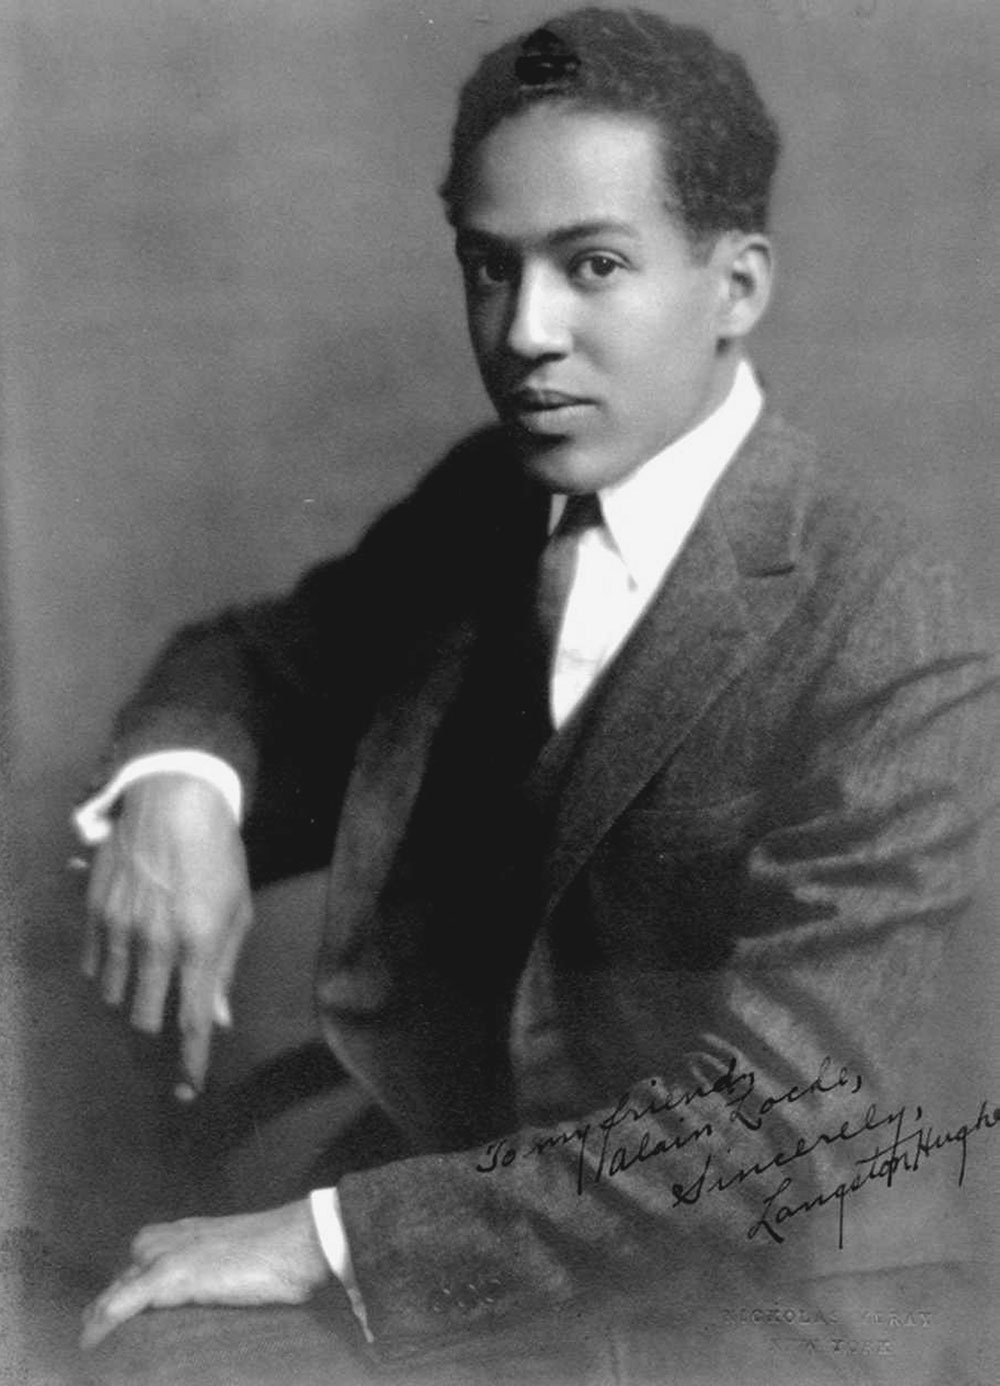 Langston Hughes.Photo courtesy of the Moorland-Spingarn Research Center, Howard University Archives